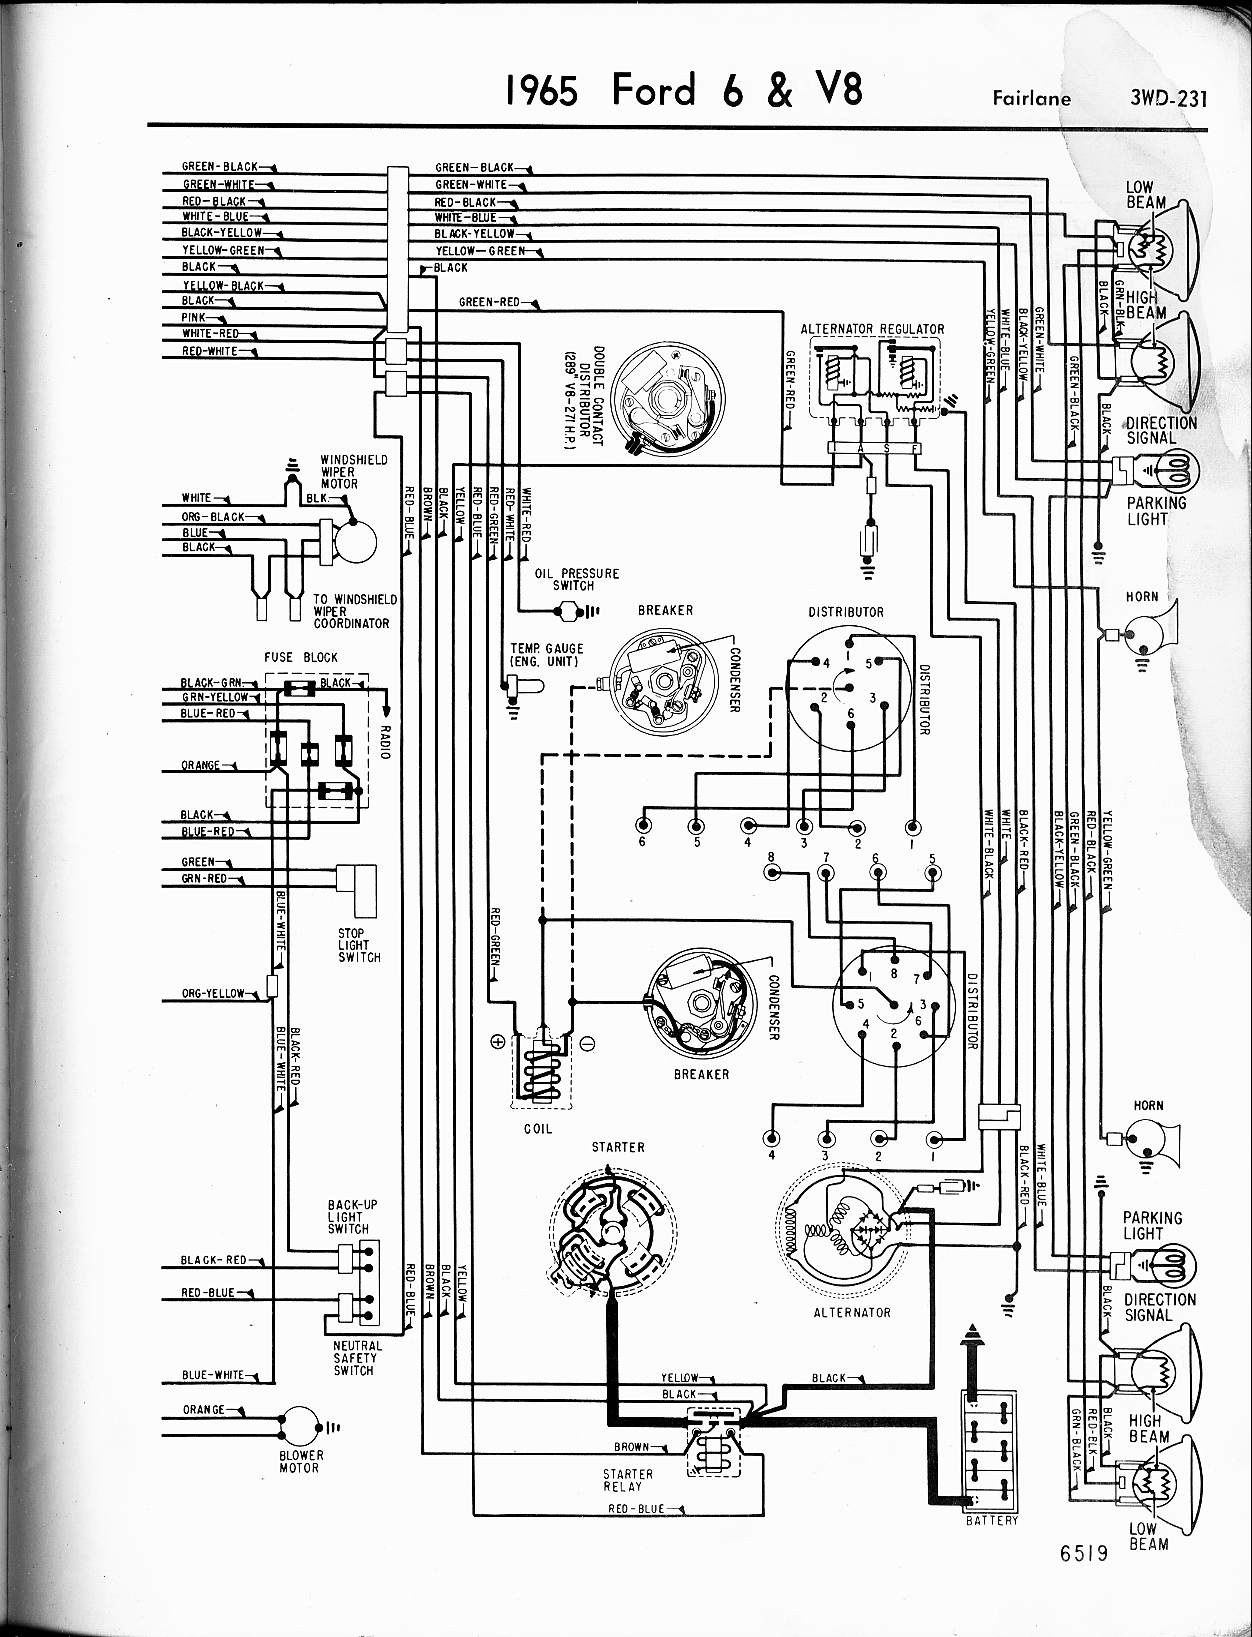 [SCHEMATICS_48ZD]  SC_9482] Ford F100 Wiring Diagrams 1967 Ford F100 Wiring Diagram 66 Ford  F100 Free Diagram | 1966 Ford Truck Wiring Diagram For Alternator |  | Ation Mentra Hone Jebrp Xolia Anth Getap Oupli Diog Anth Bemua Sulf Teria  Xaem Ical Licuk Carn Rious Sand Lukep Oxyt Rmine Shopa Mohammedshrine  Librar Wiring 101